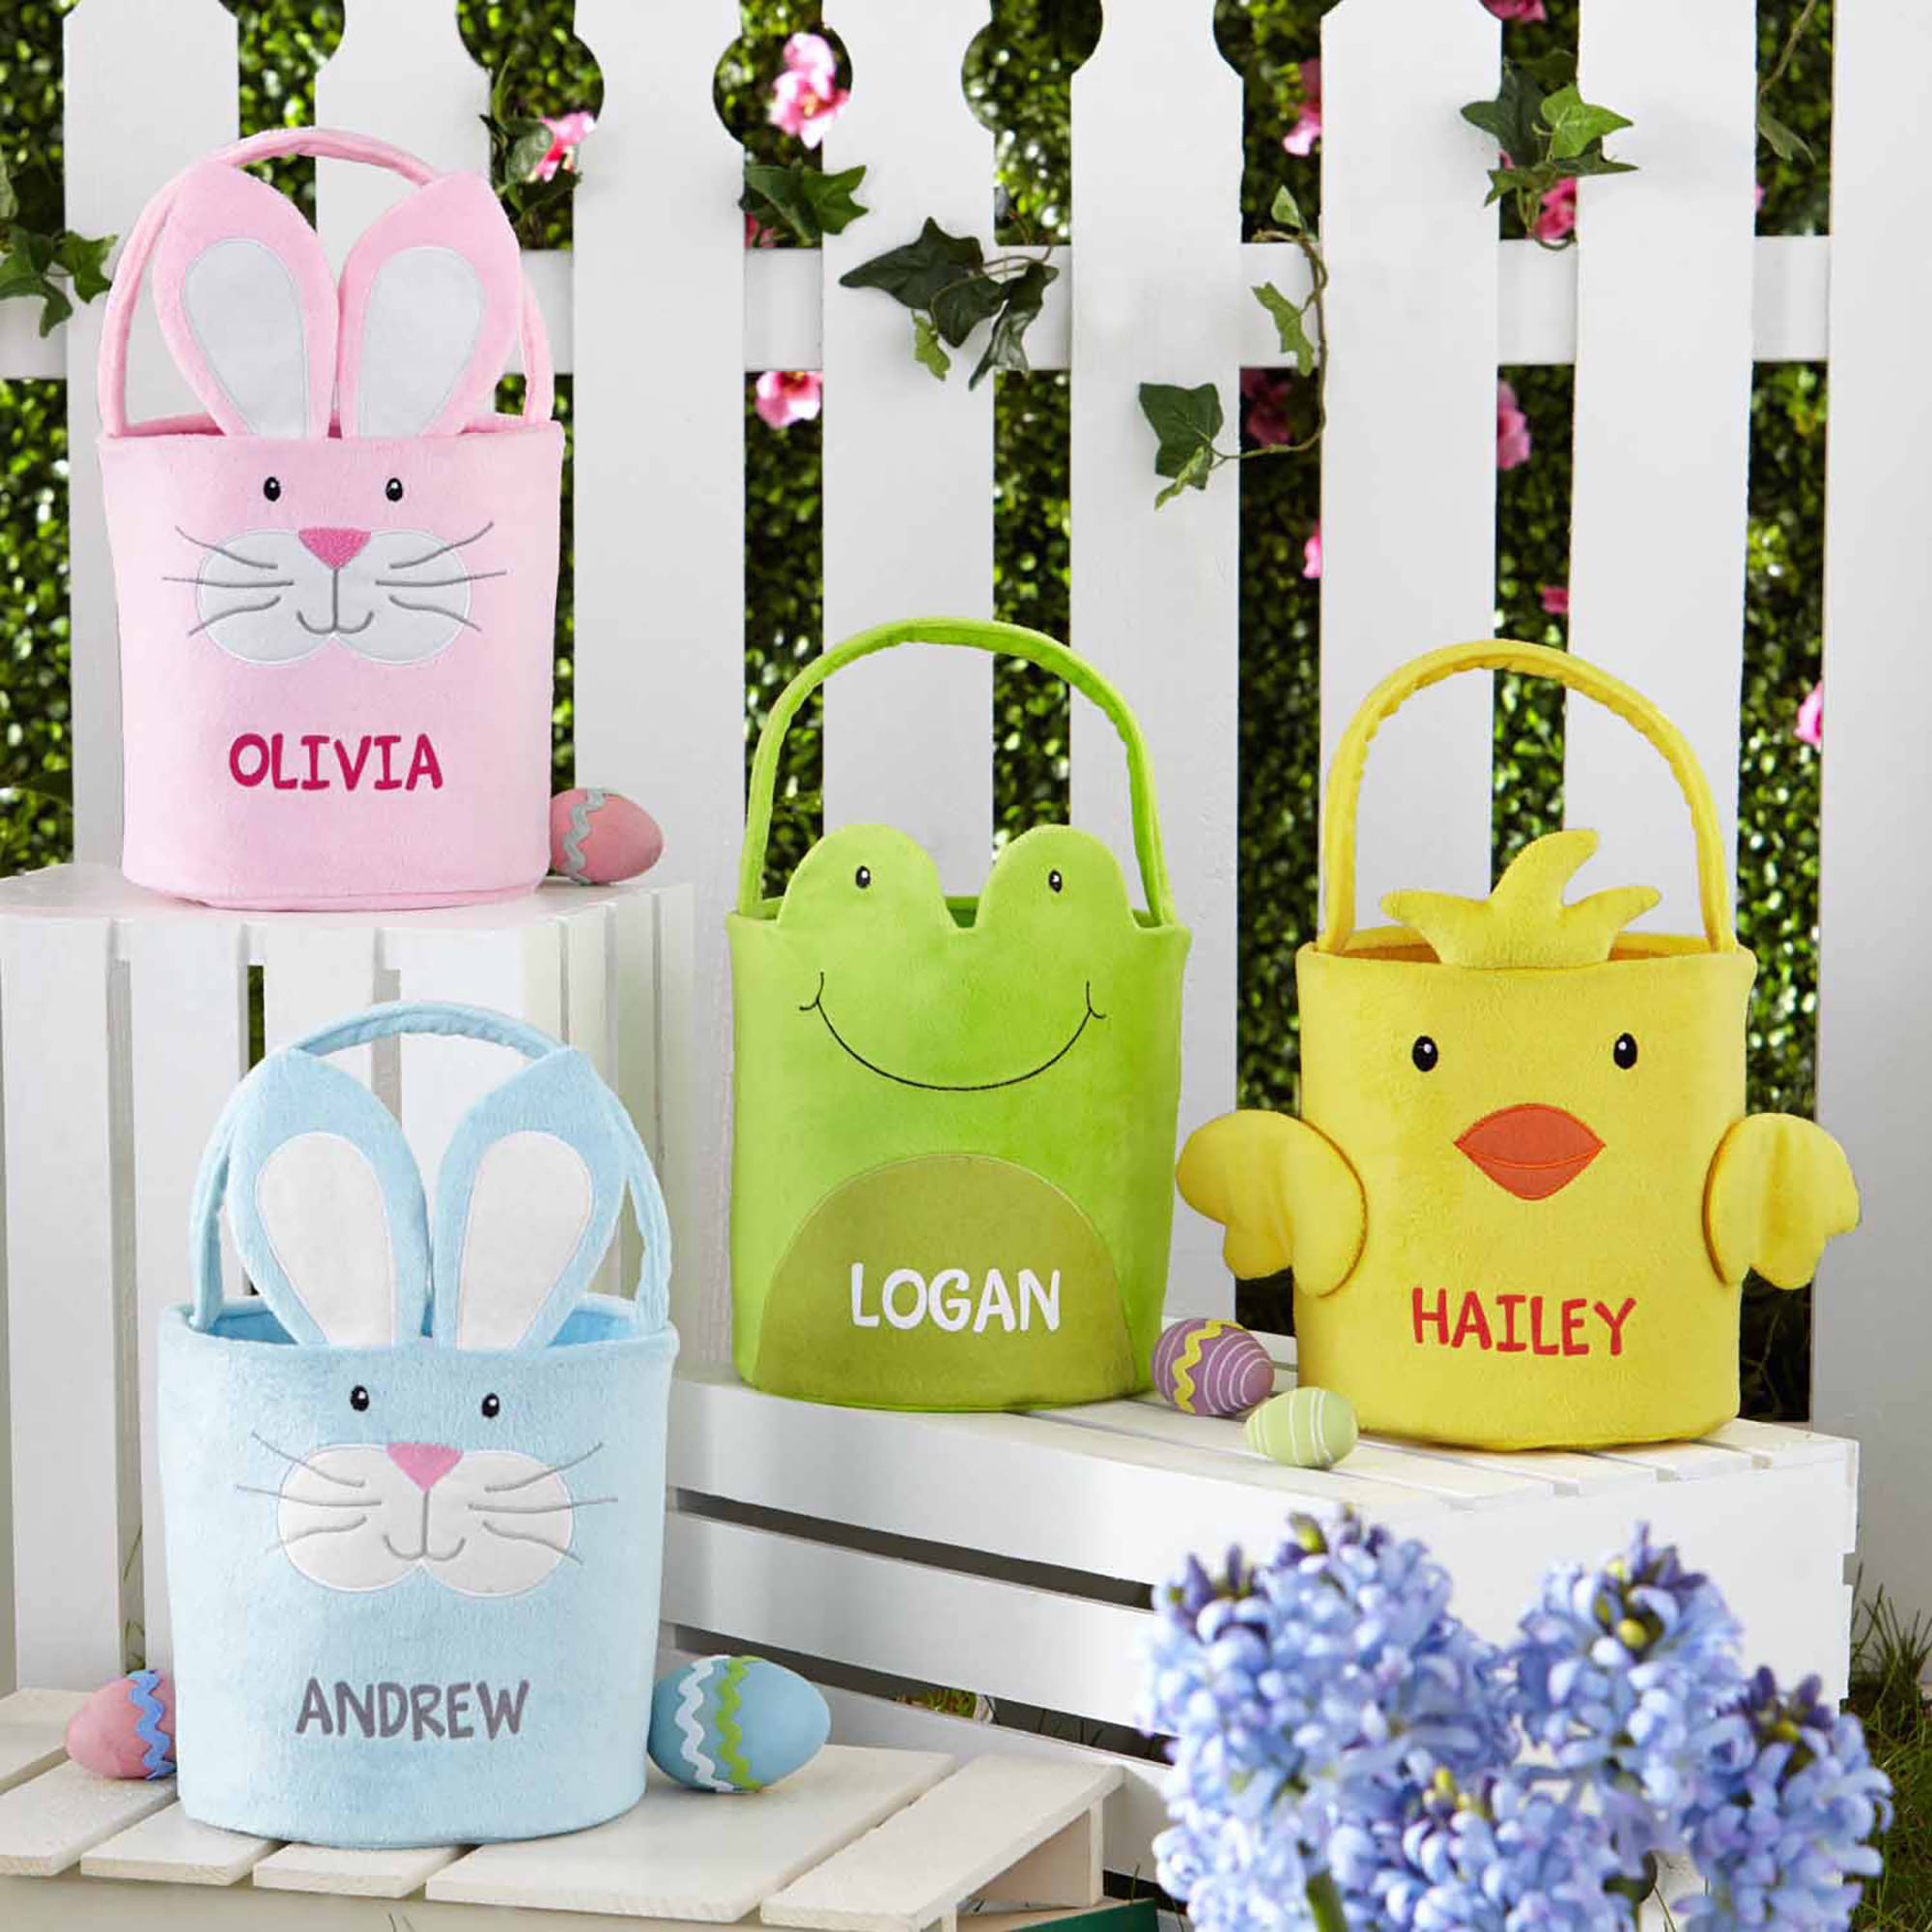 Walmart: Personalized Plush Easter Baskets Only $9.98 + FREE Store Pickup